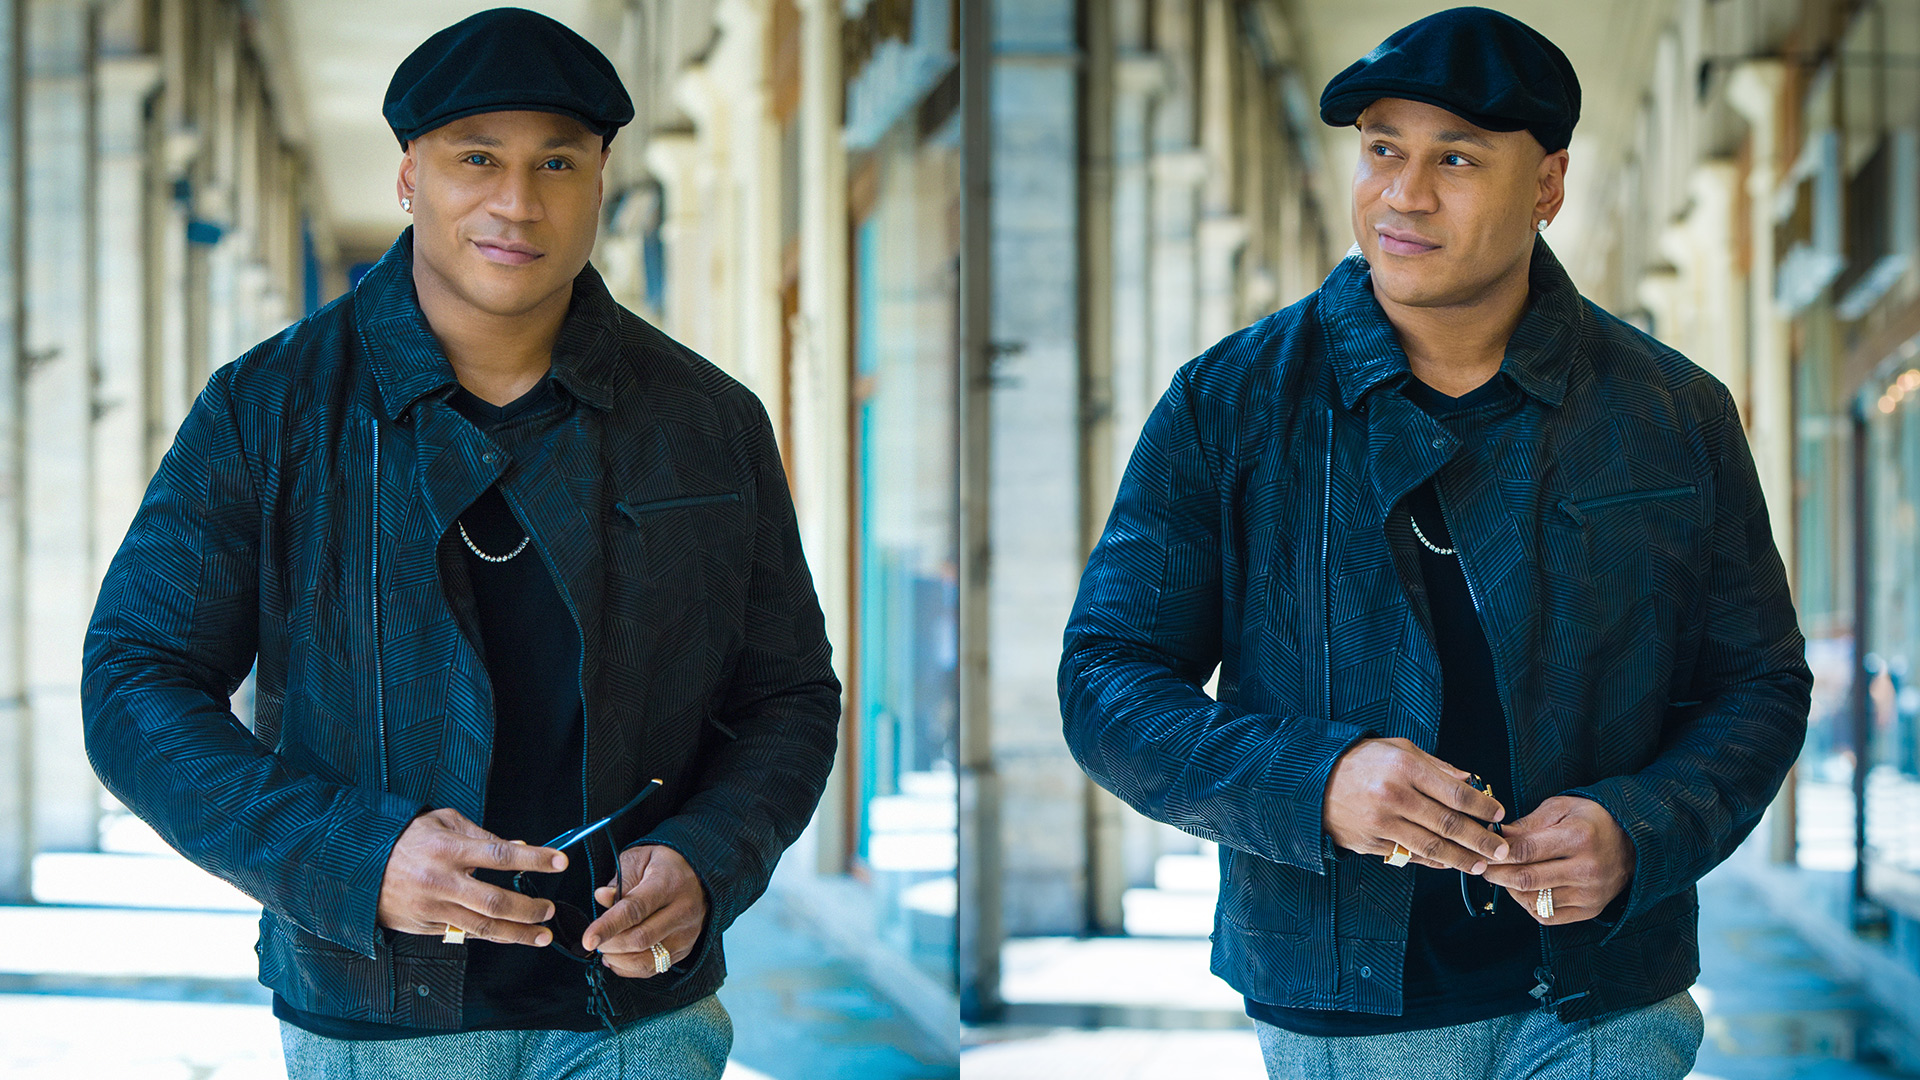 LL COOL J shining in the City of Light